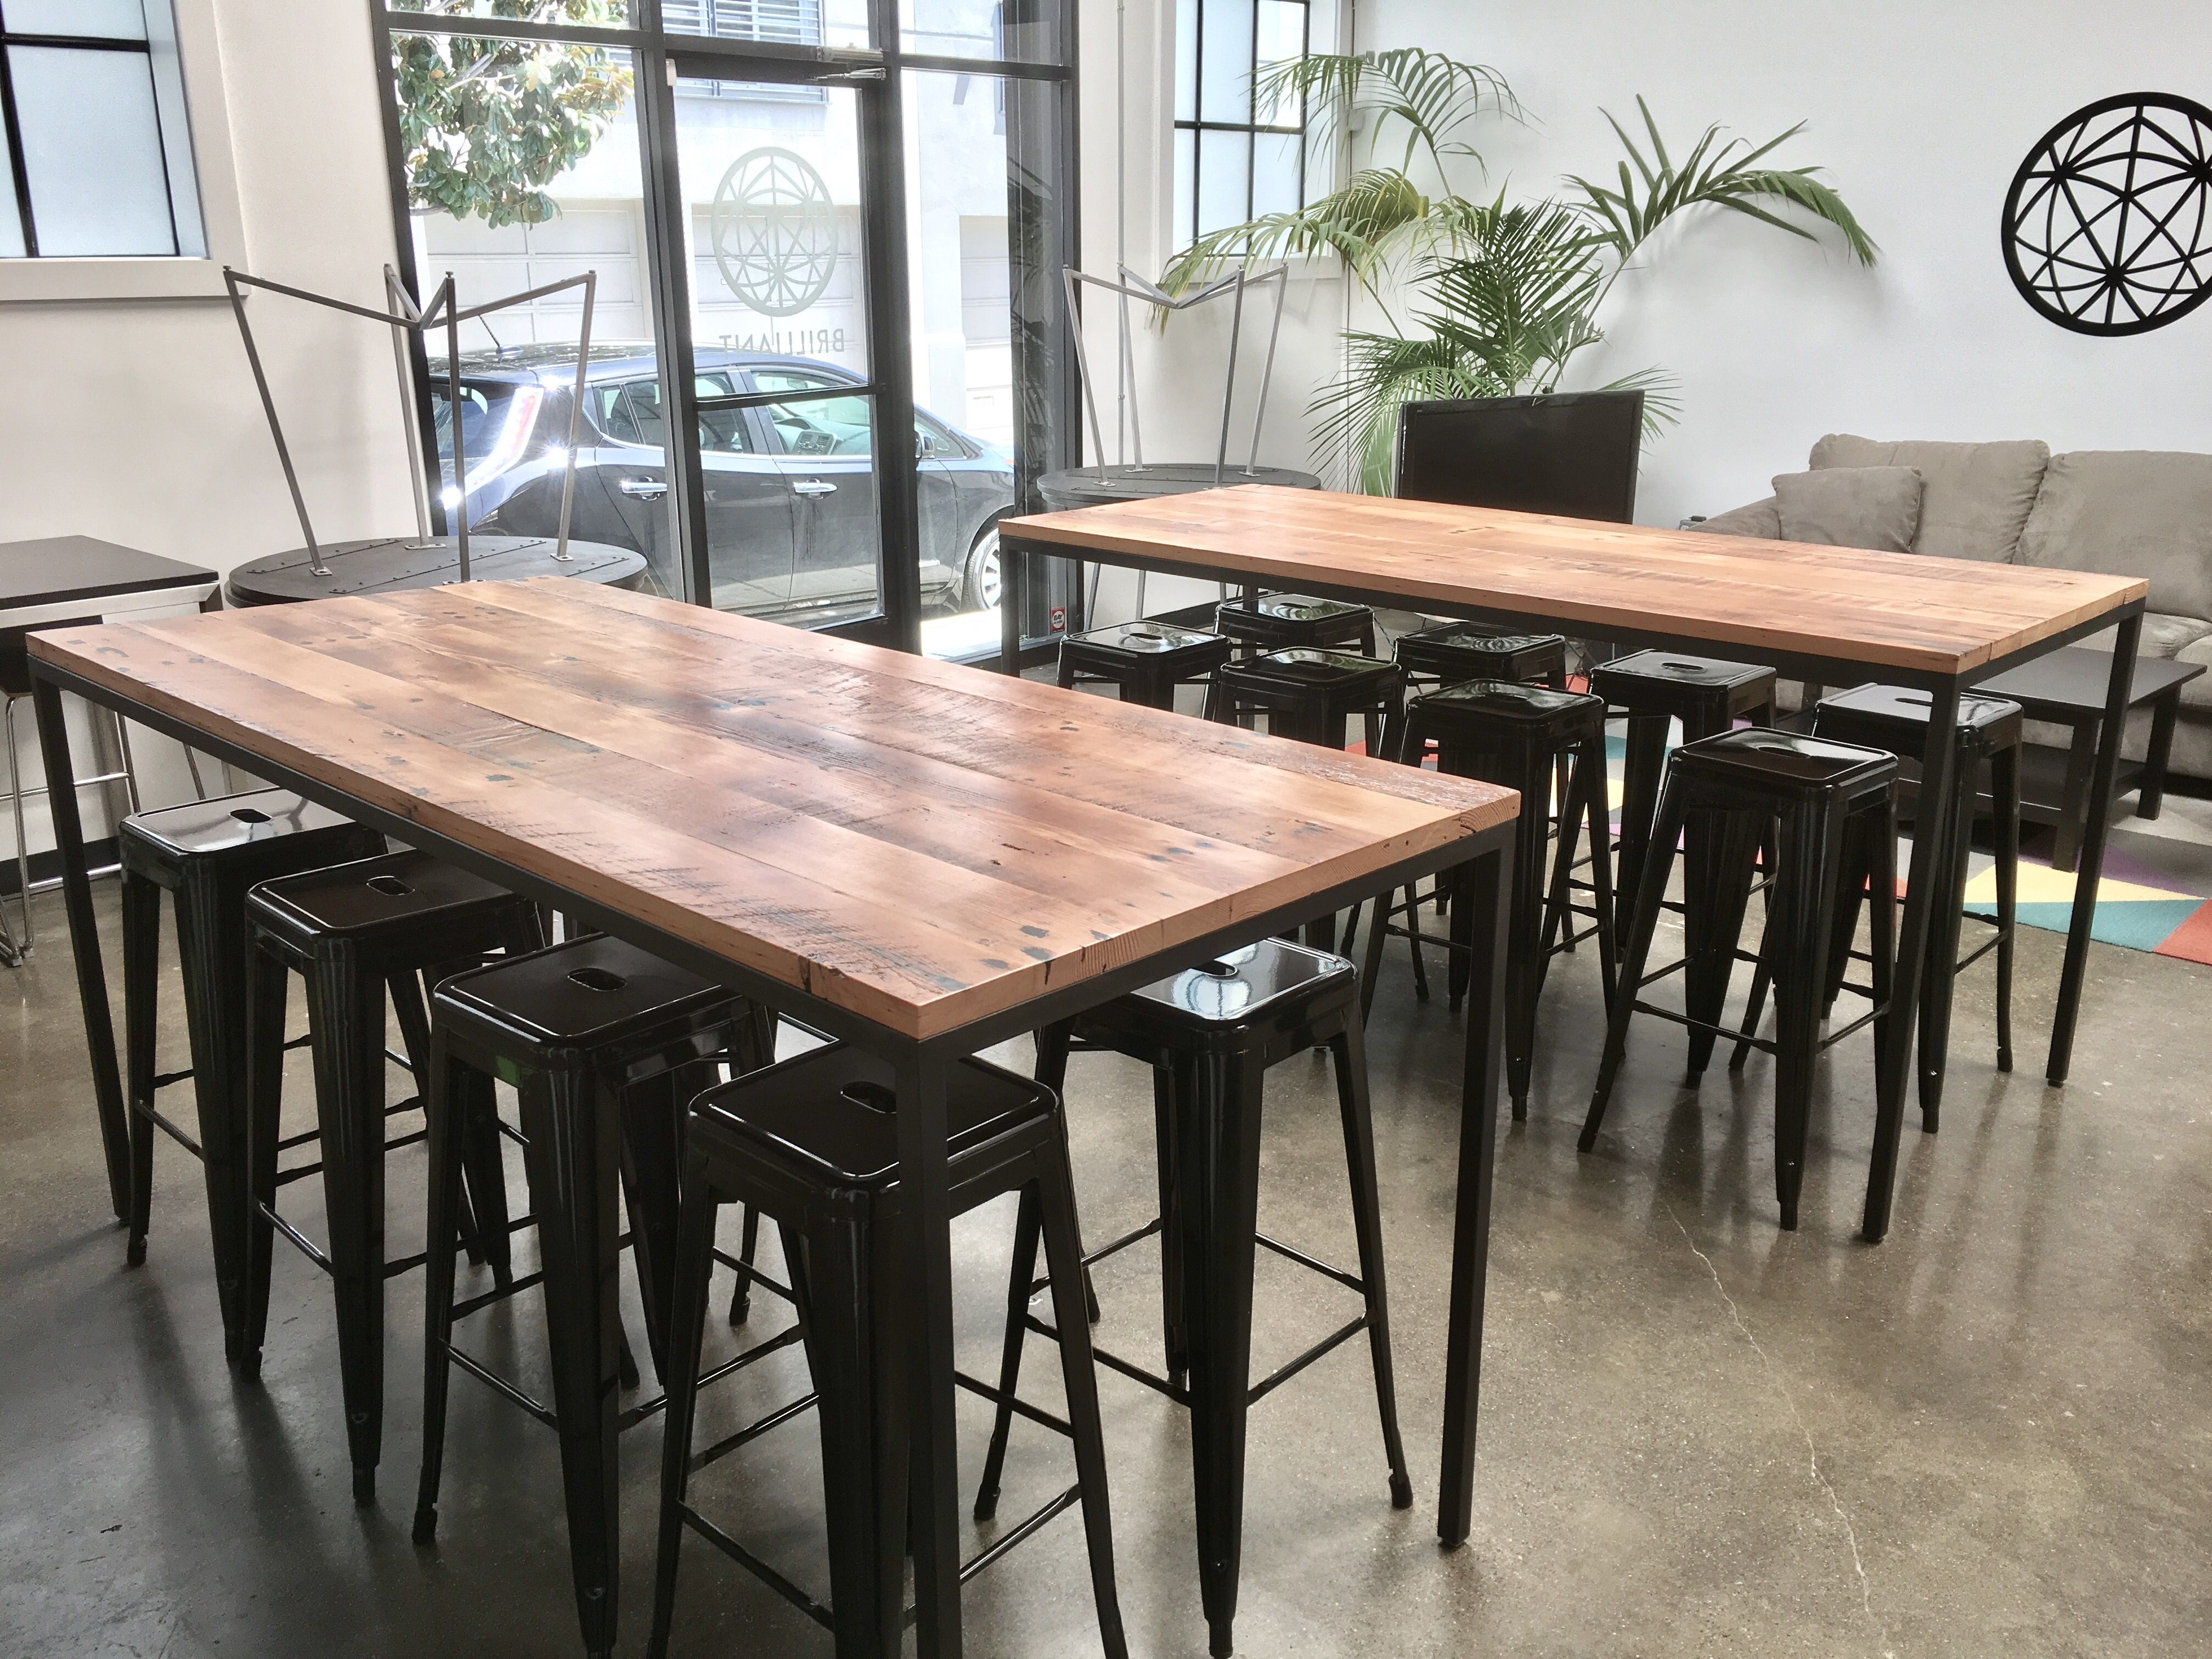 Hand Crafted Industrial Reclaimed Wood Table With Blackened Steel